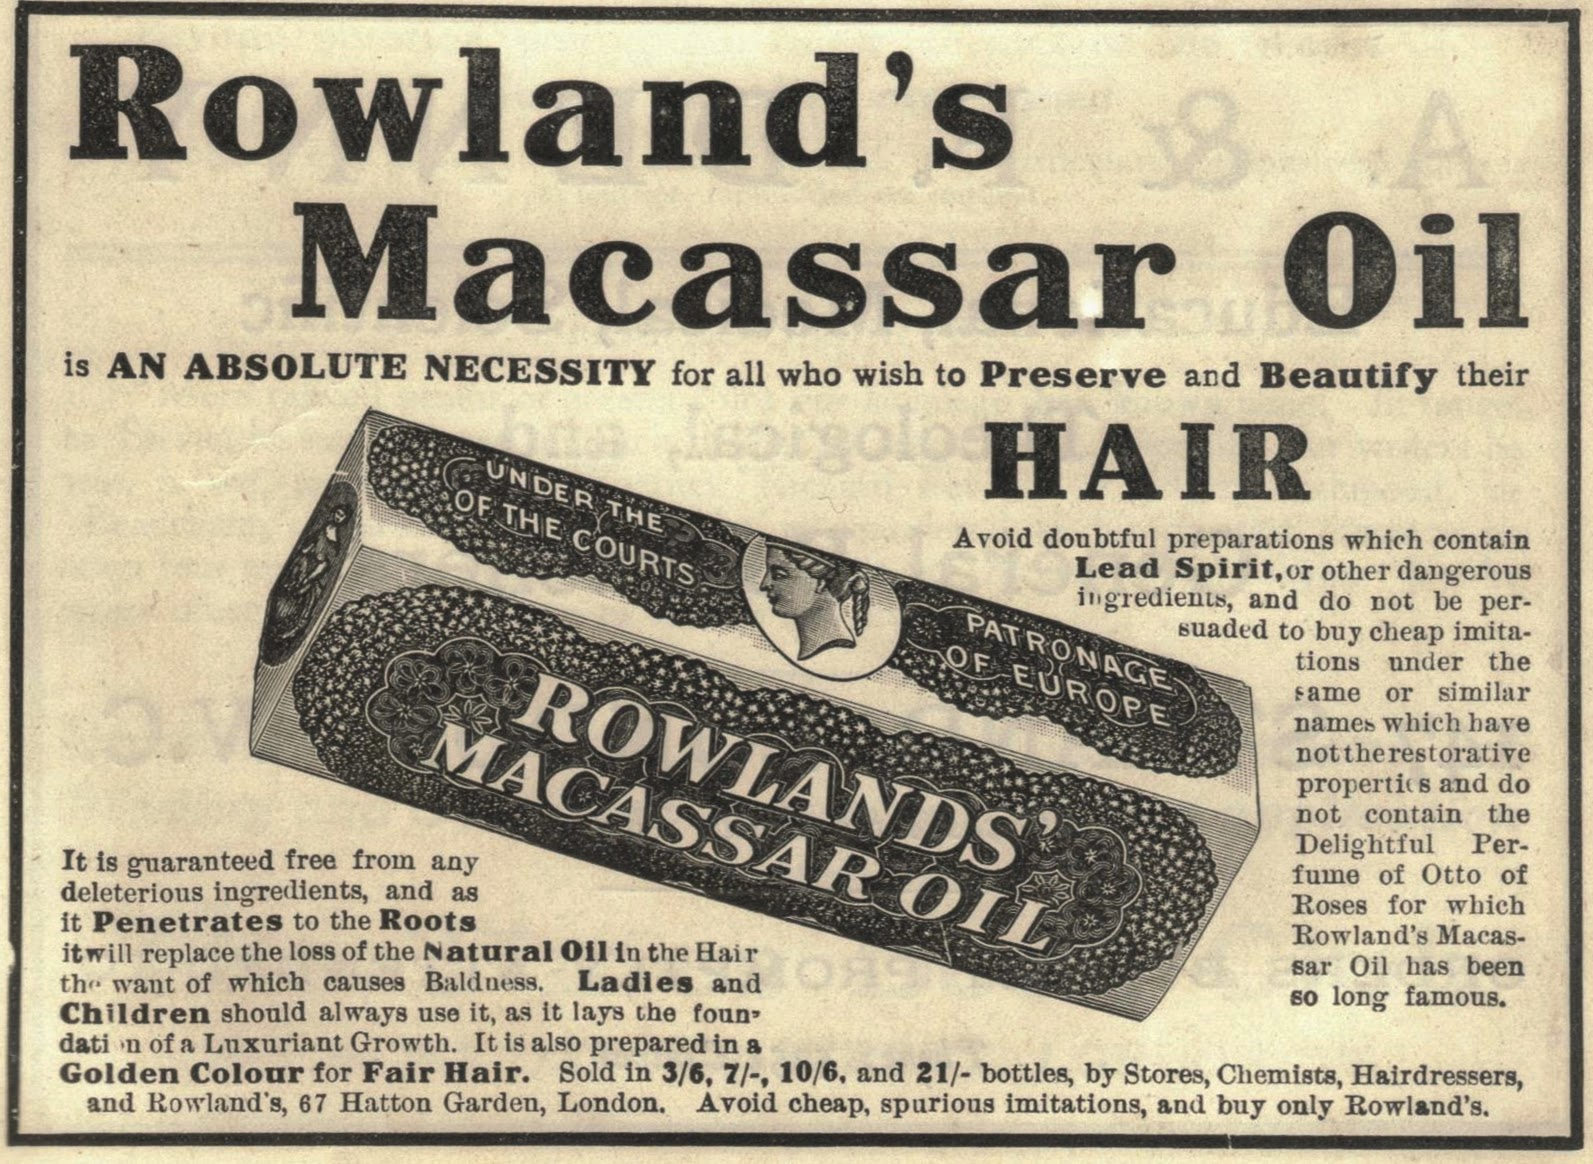 1914 advert for Macassar Oil